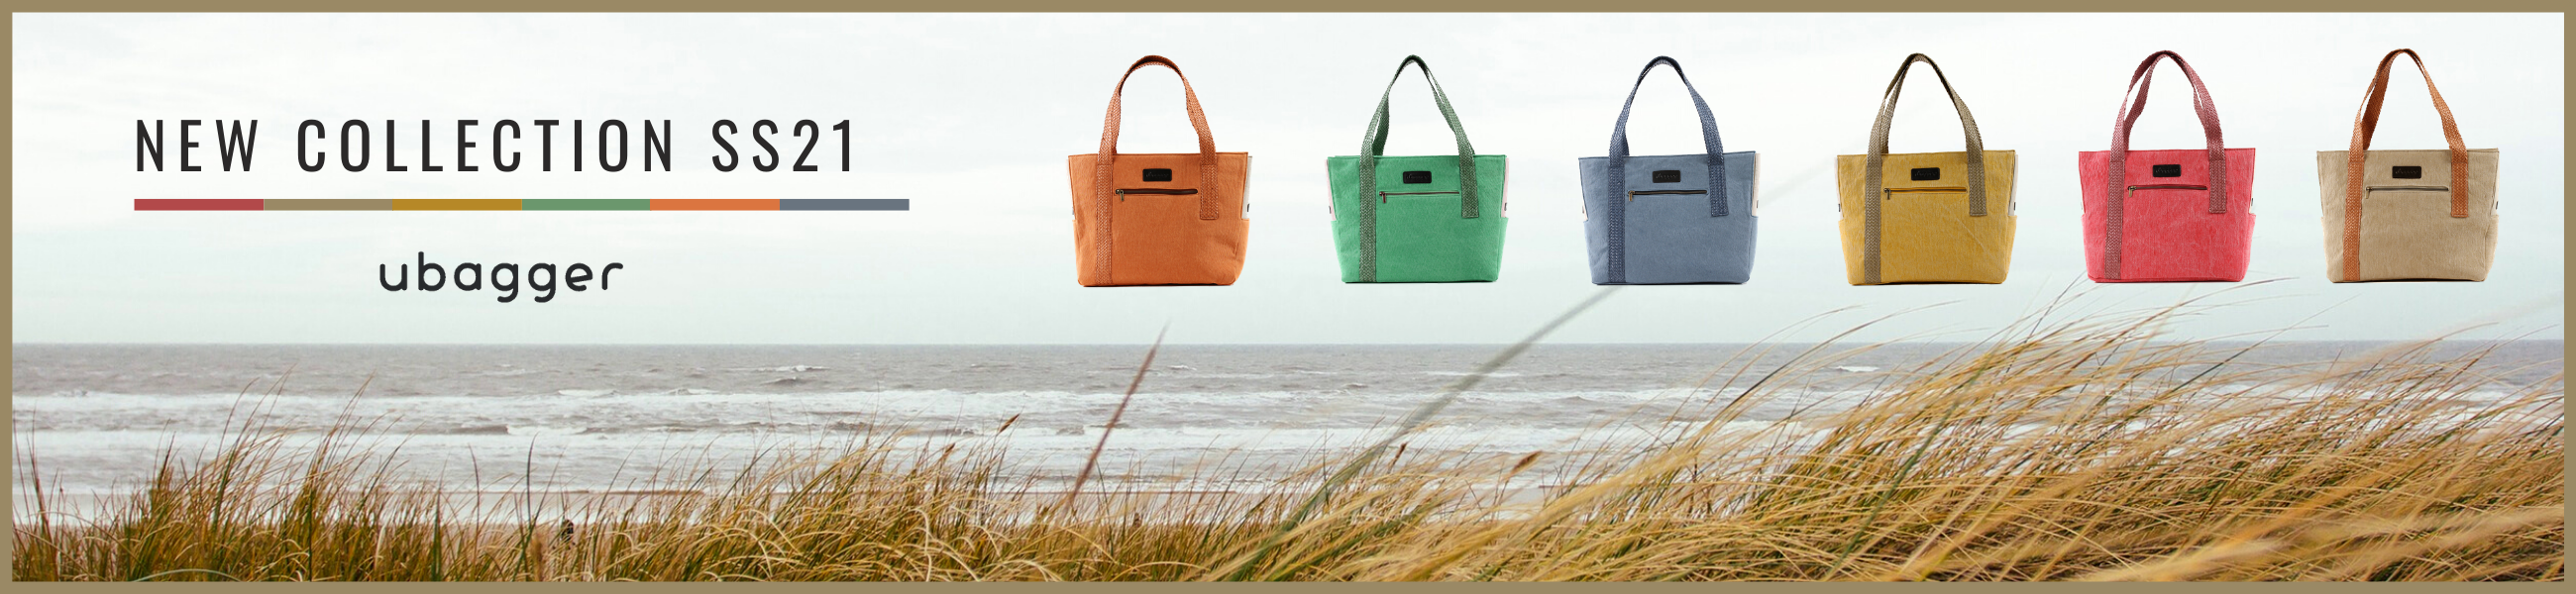 Tote medium spring and summer collection SS21